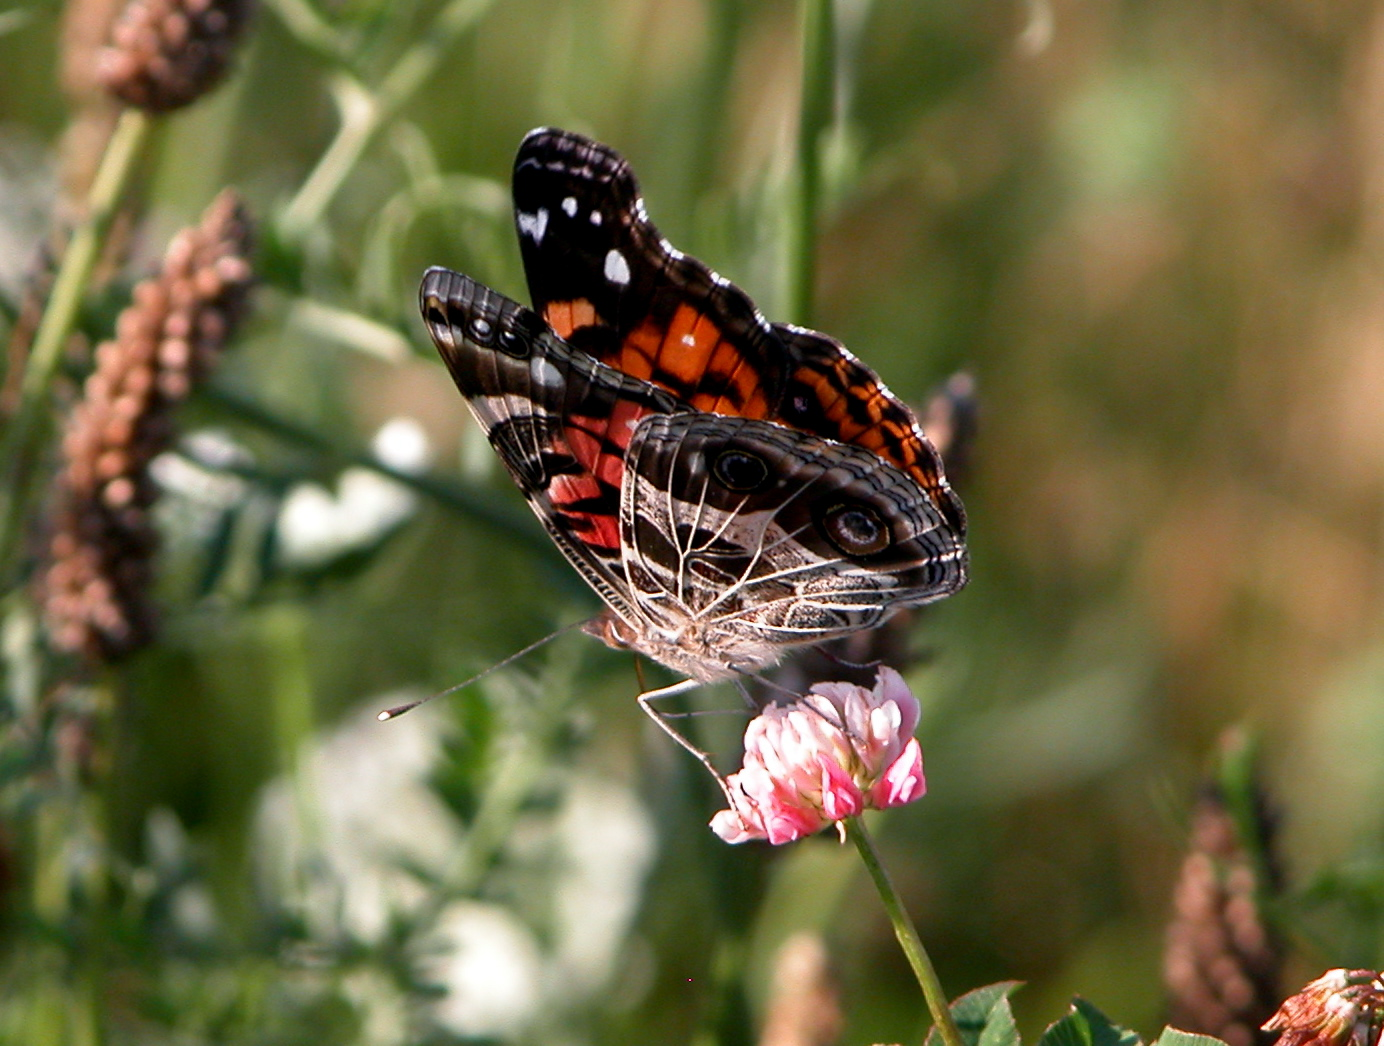 Pin Butterfly Genus Species Southern Dogface Pictures on Pinterest